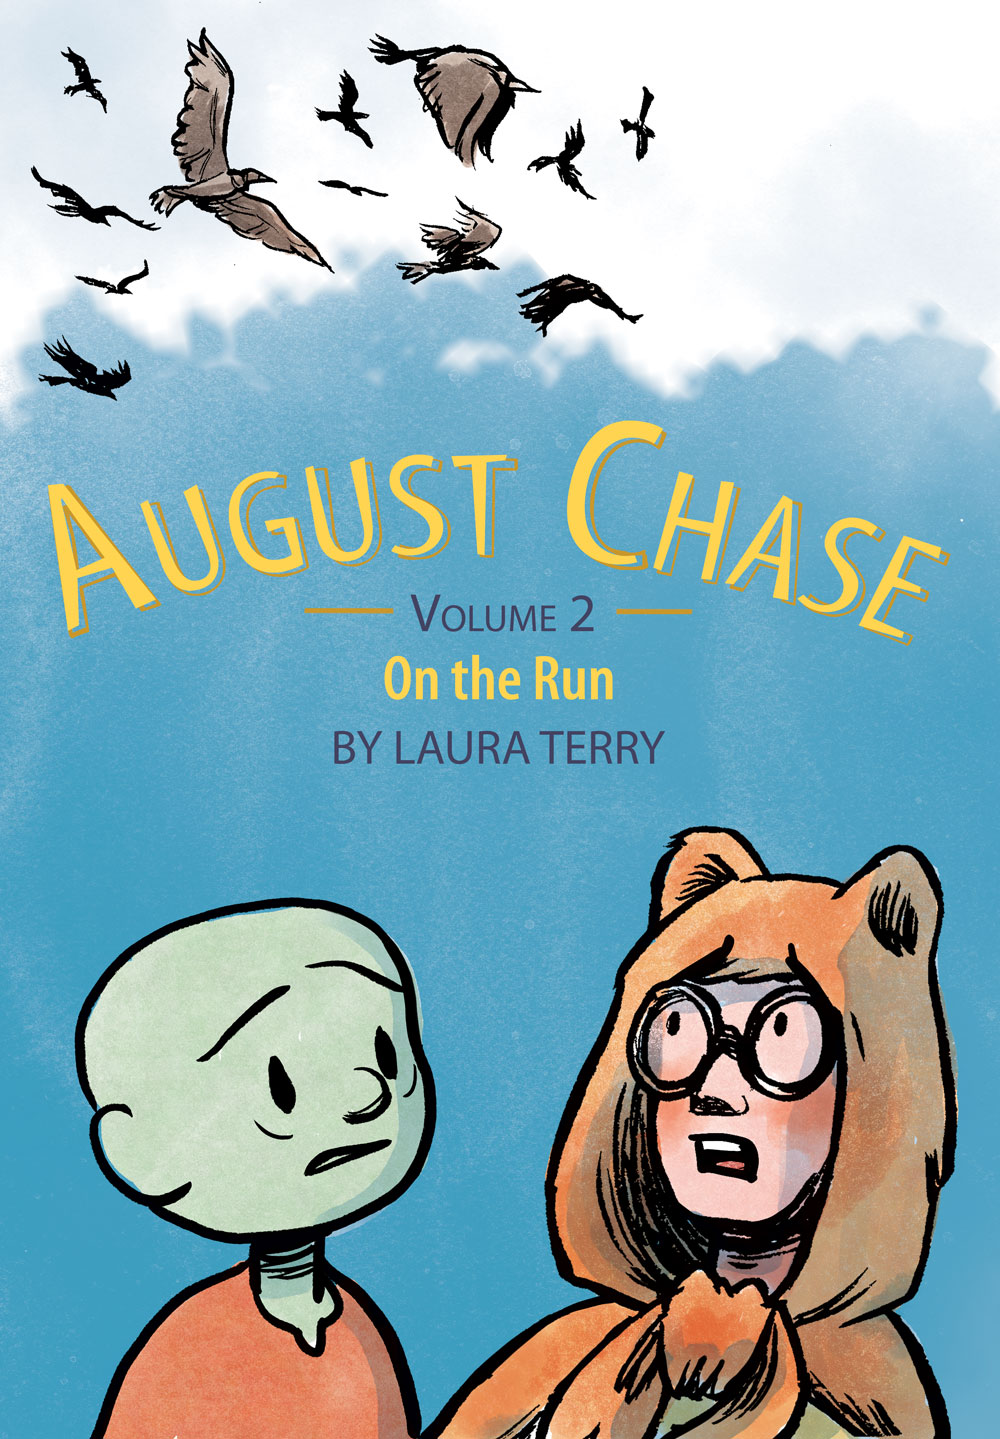 August Chase by Laura Terry